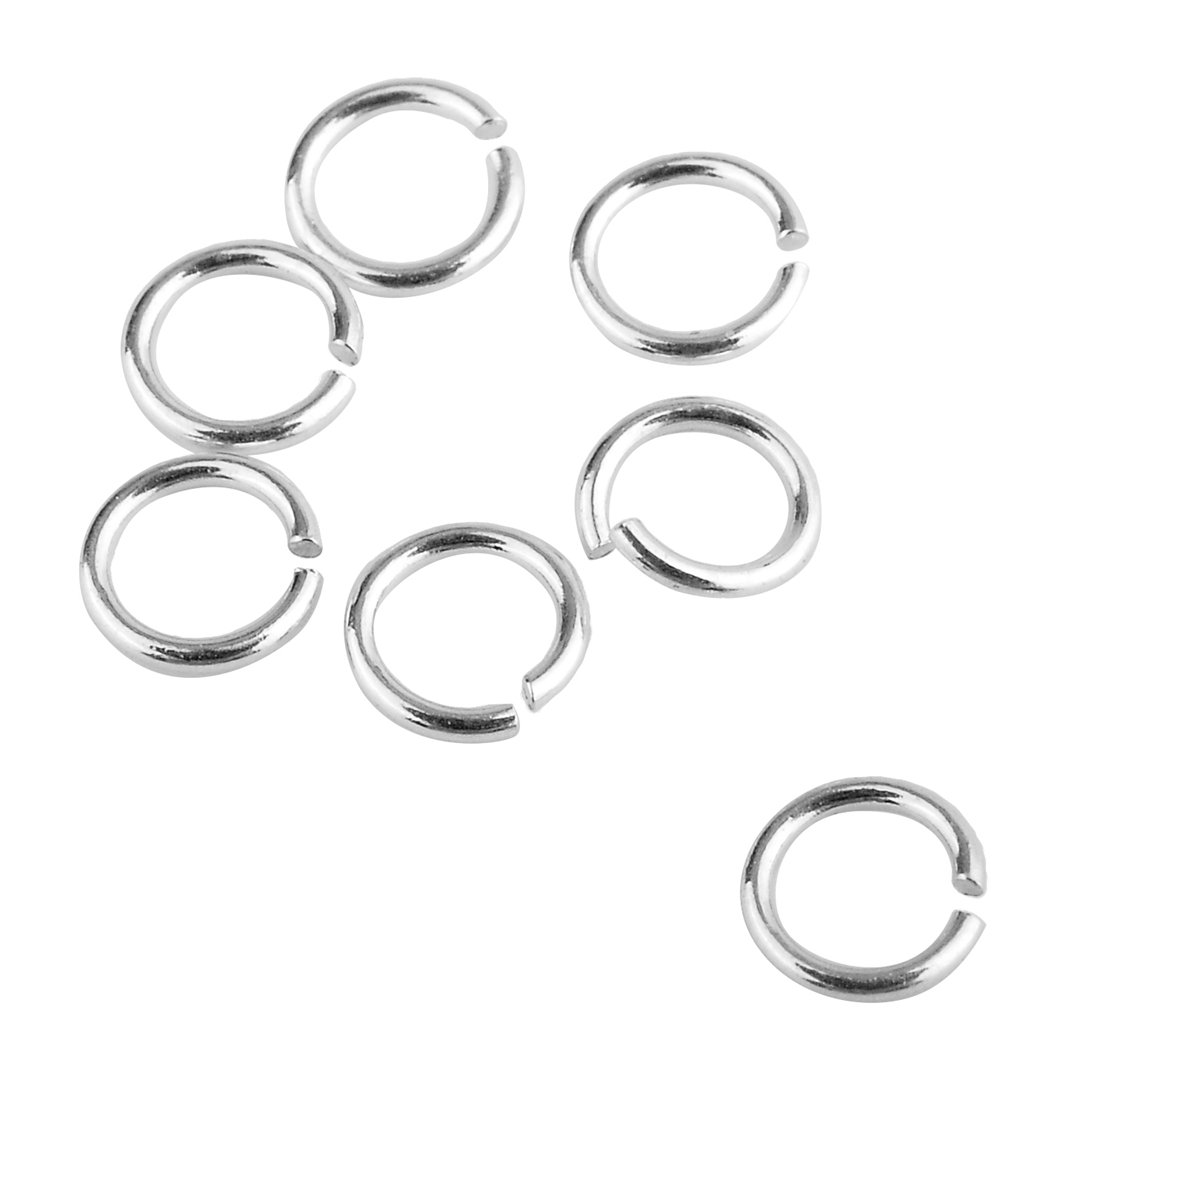 200PCS 925 Sterling Silver Open Jump Ring for DIY Jewellery Making Findings 2.5mmx0.5mm Yin Feng 0AF0SA0B4B